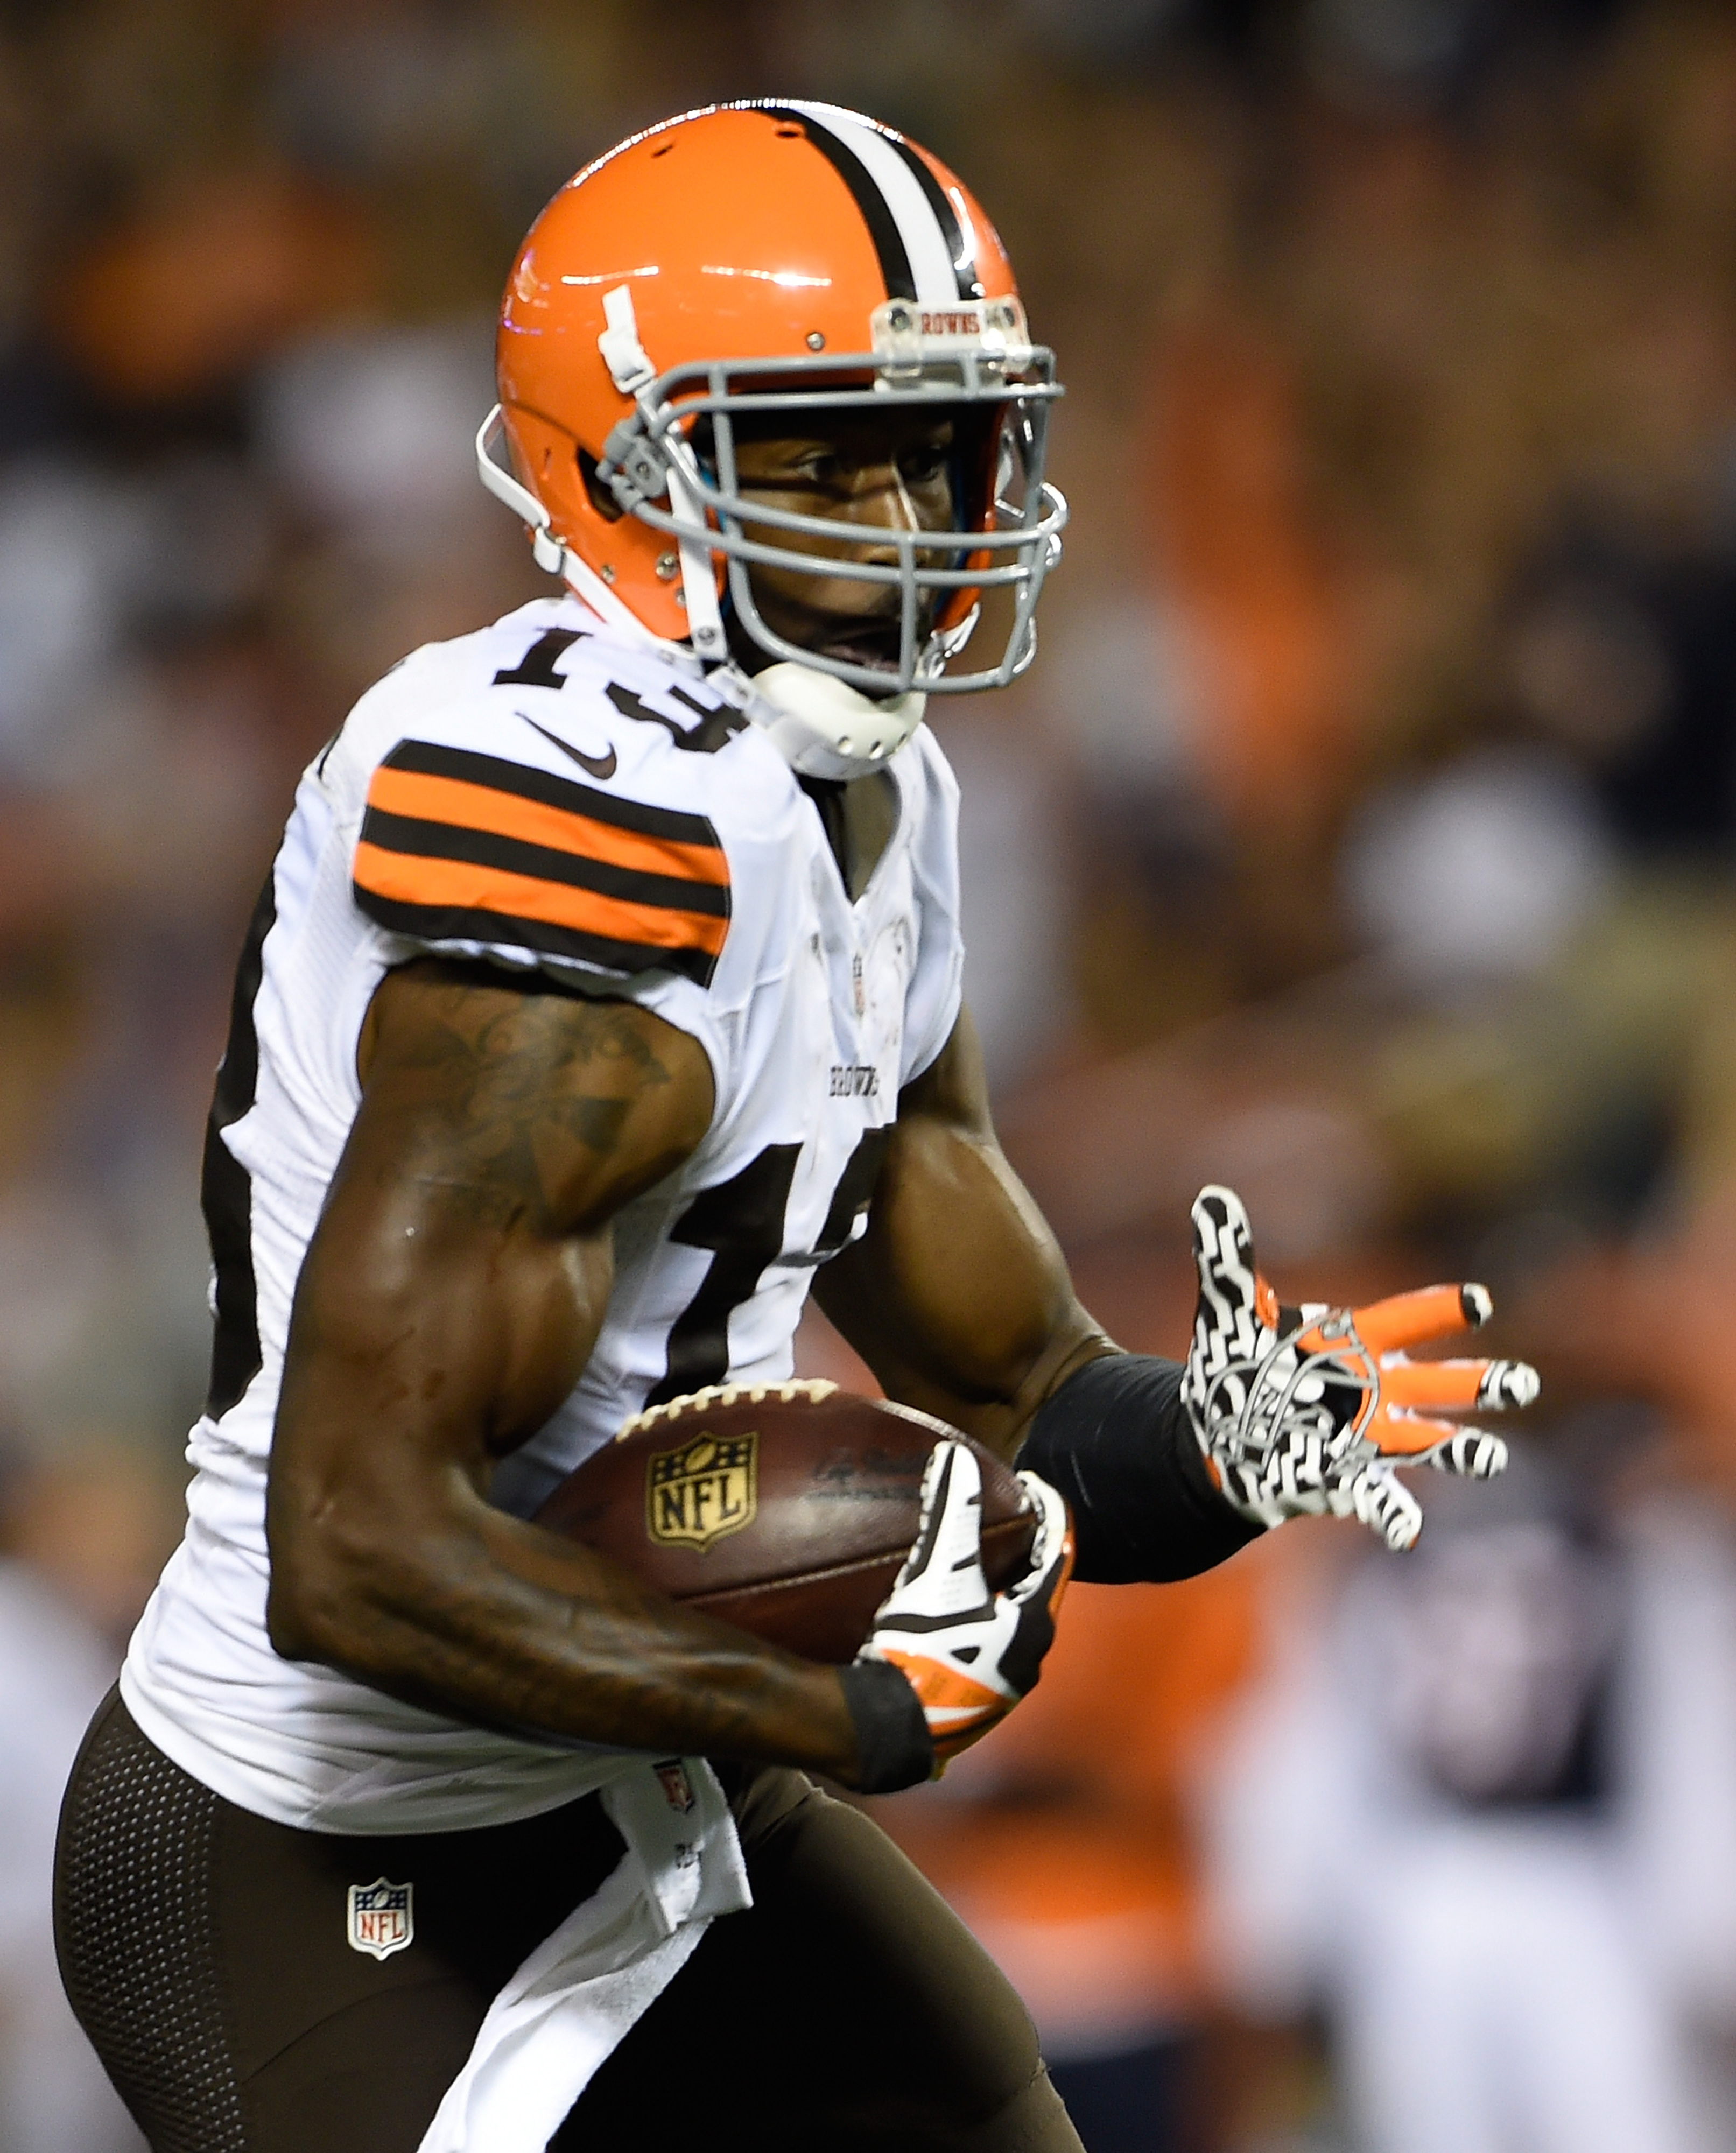 2014 NFL roster cuts tracker: Teams cut down to 53-man rosters